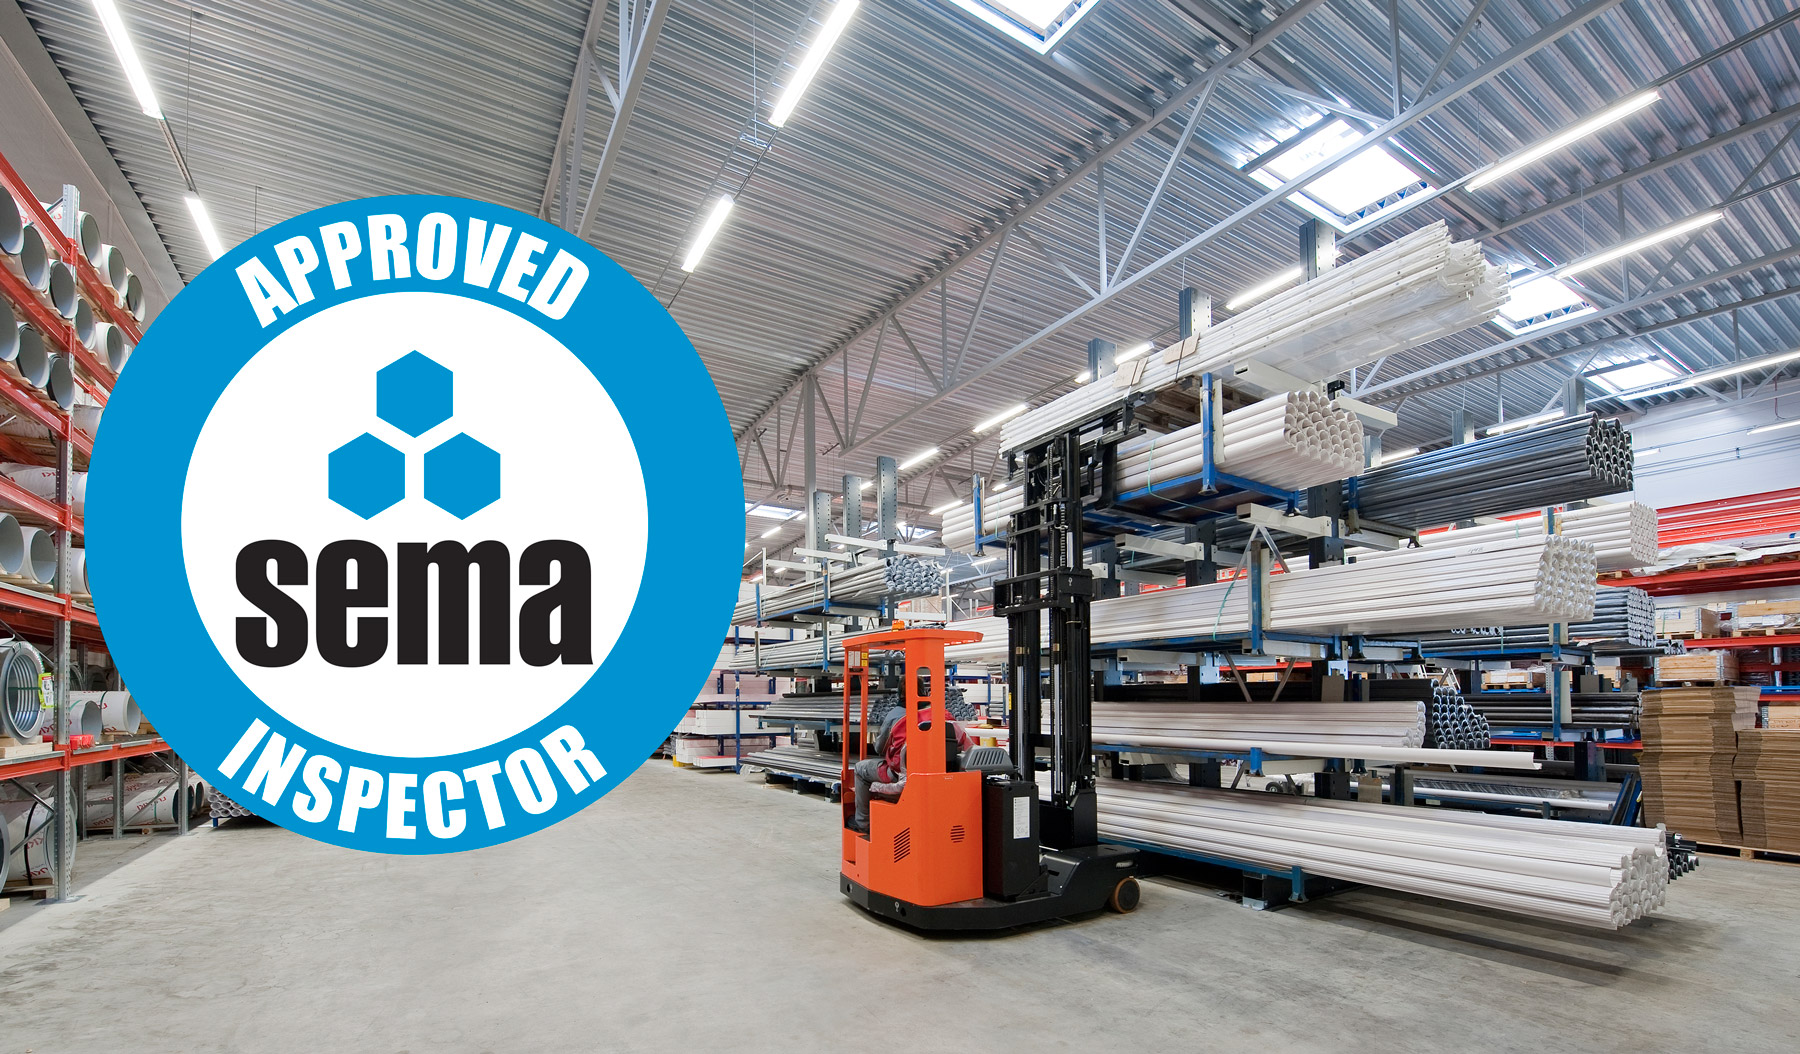 SEMA Approved for Cantilever Rack Inspections